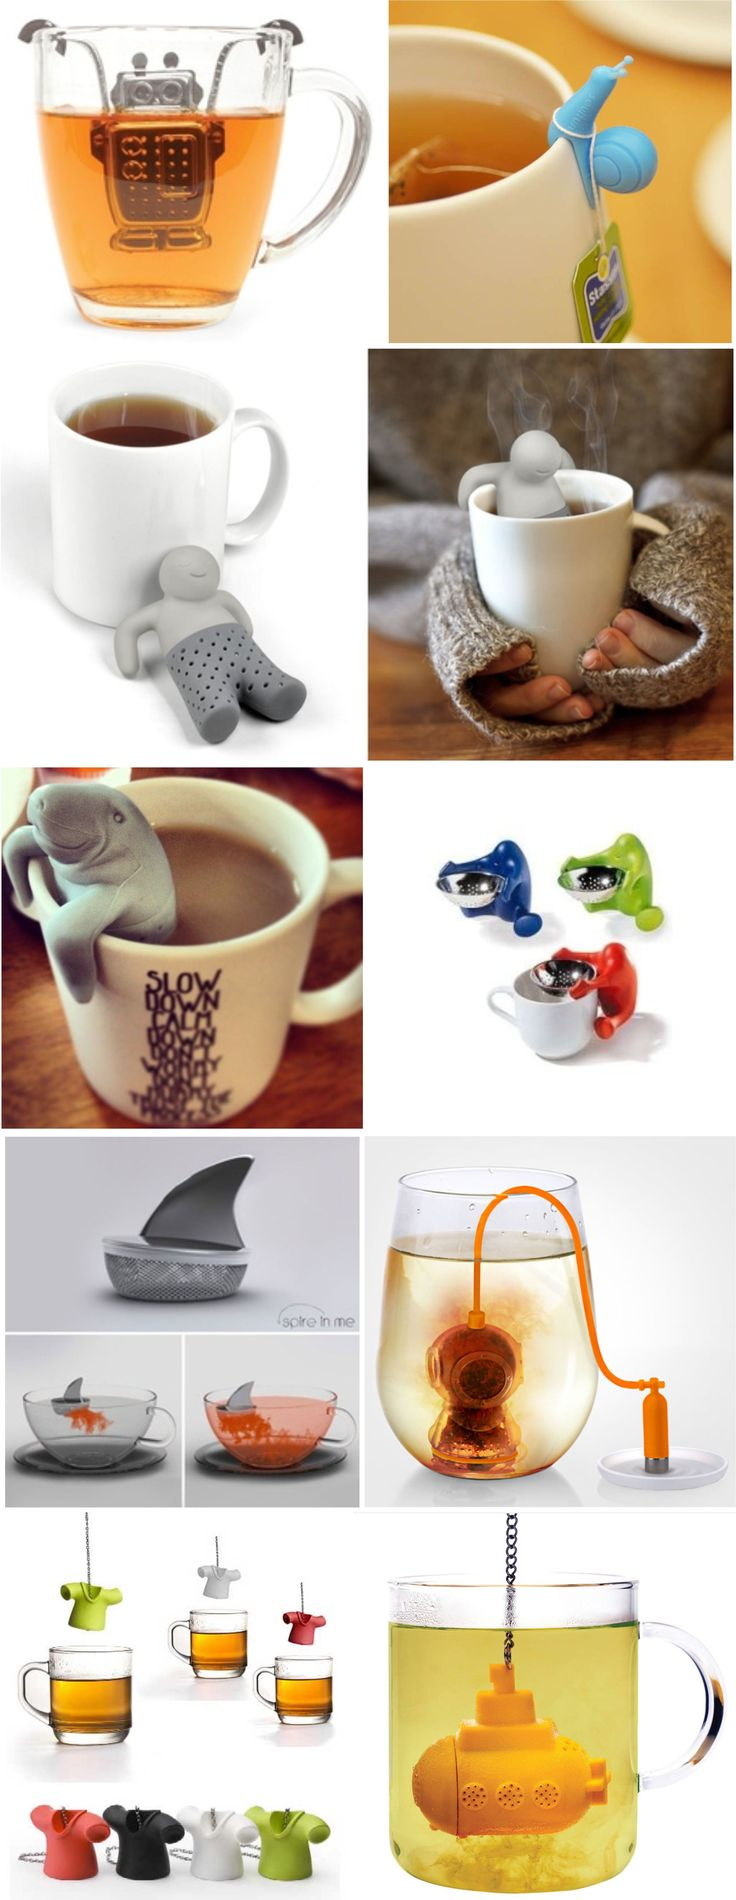 tea infuser - I need one of these if I want to try loose leaf tea, which I do! :) maybe the Mana-tea or something else REALLY cute like it! :)